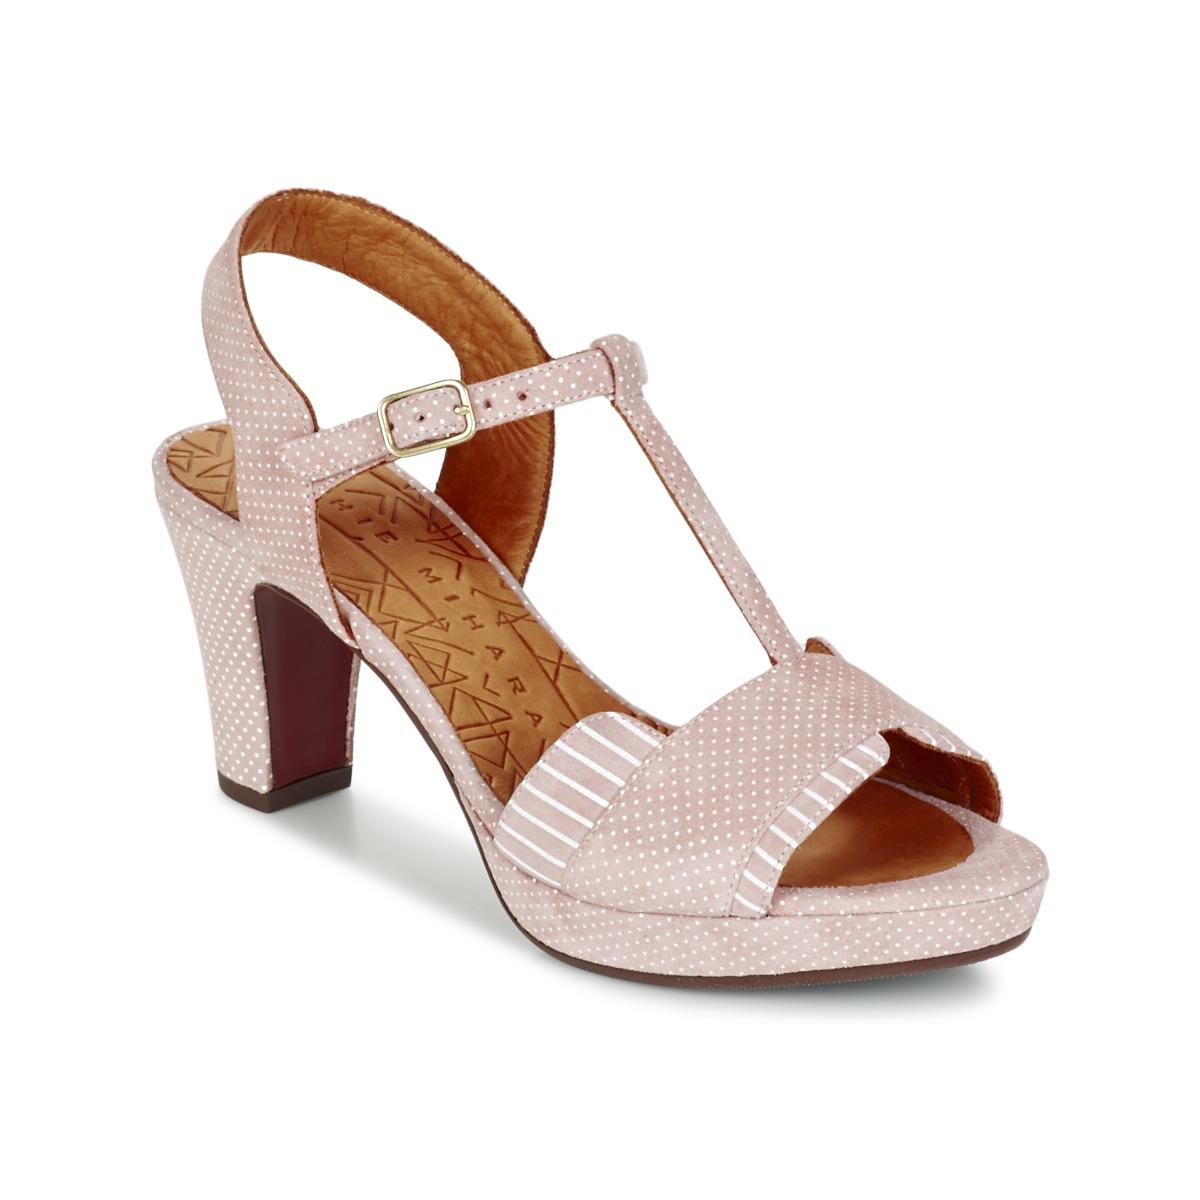 Buy Cheap Sast Chie Mihara ITOKI women's Sandals in Choice For Sale Big Sale Online Release Dates Authentic Shopping Online With Mastercard IxnS78Em